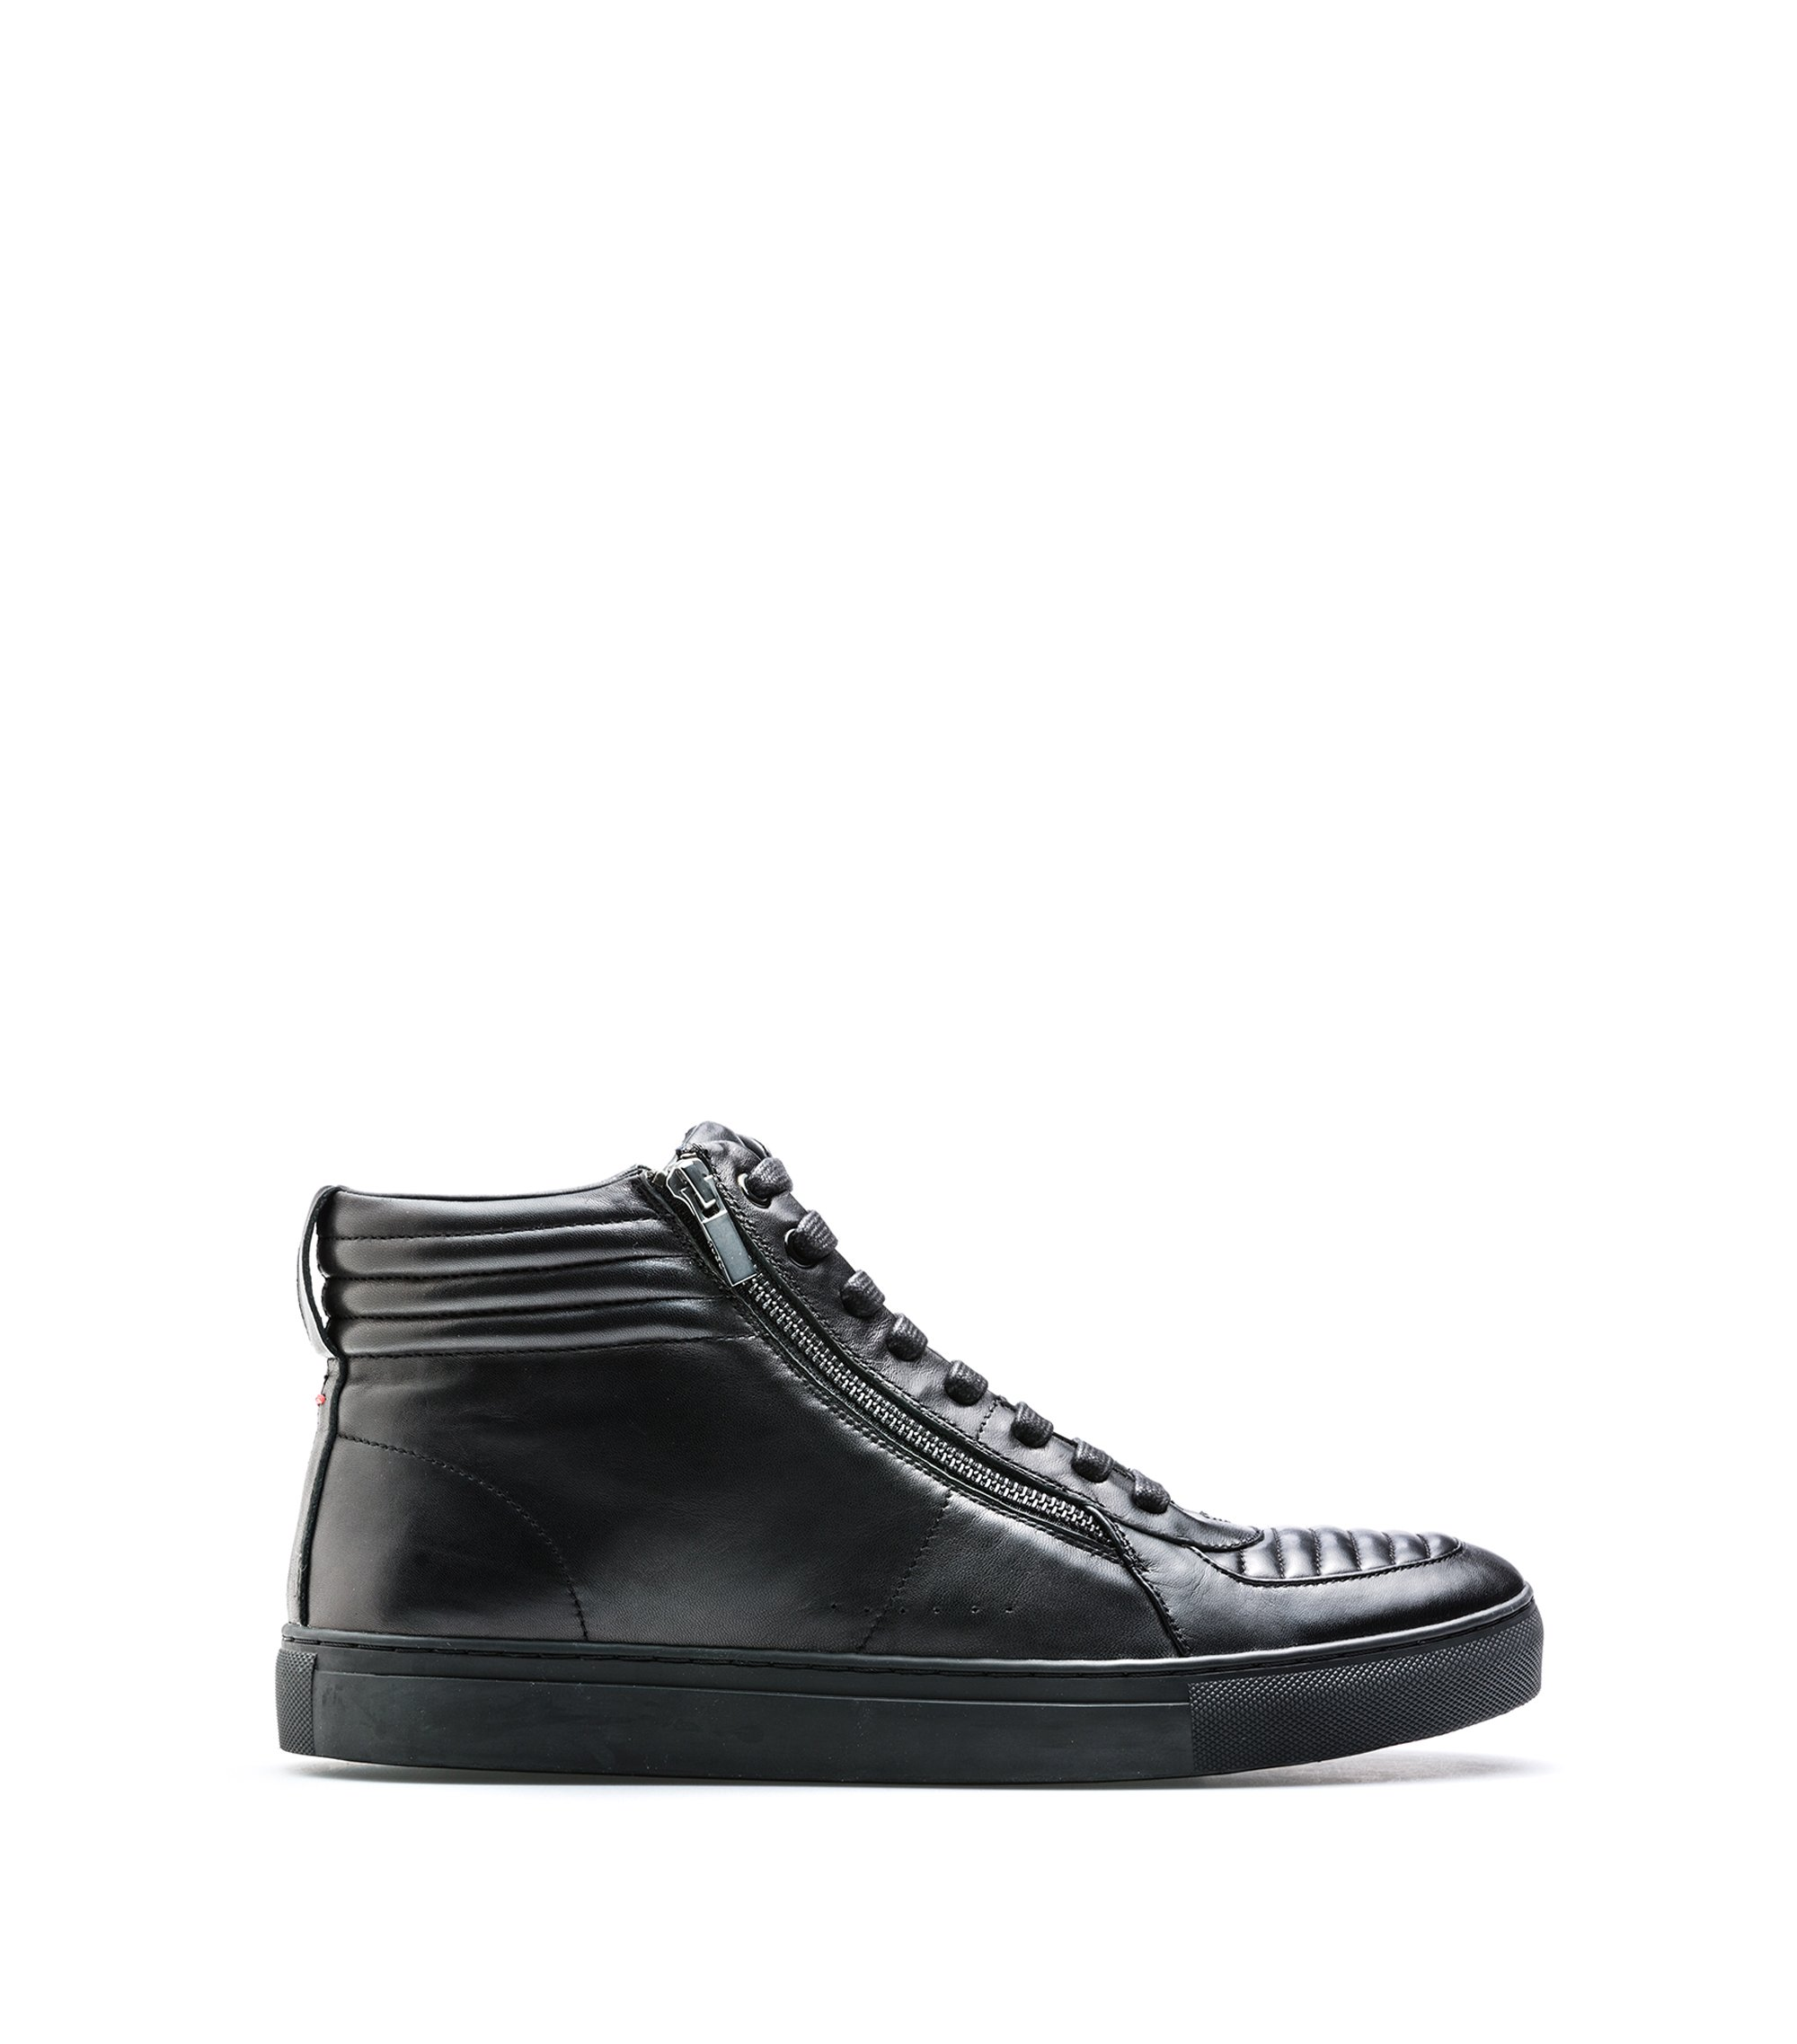 Sneakers high-top in pelle di agnello con dettagli trapuntati, Nero